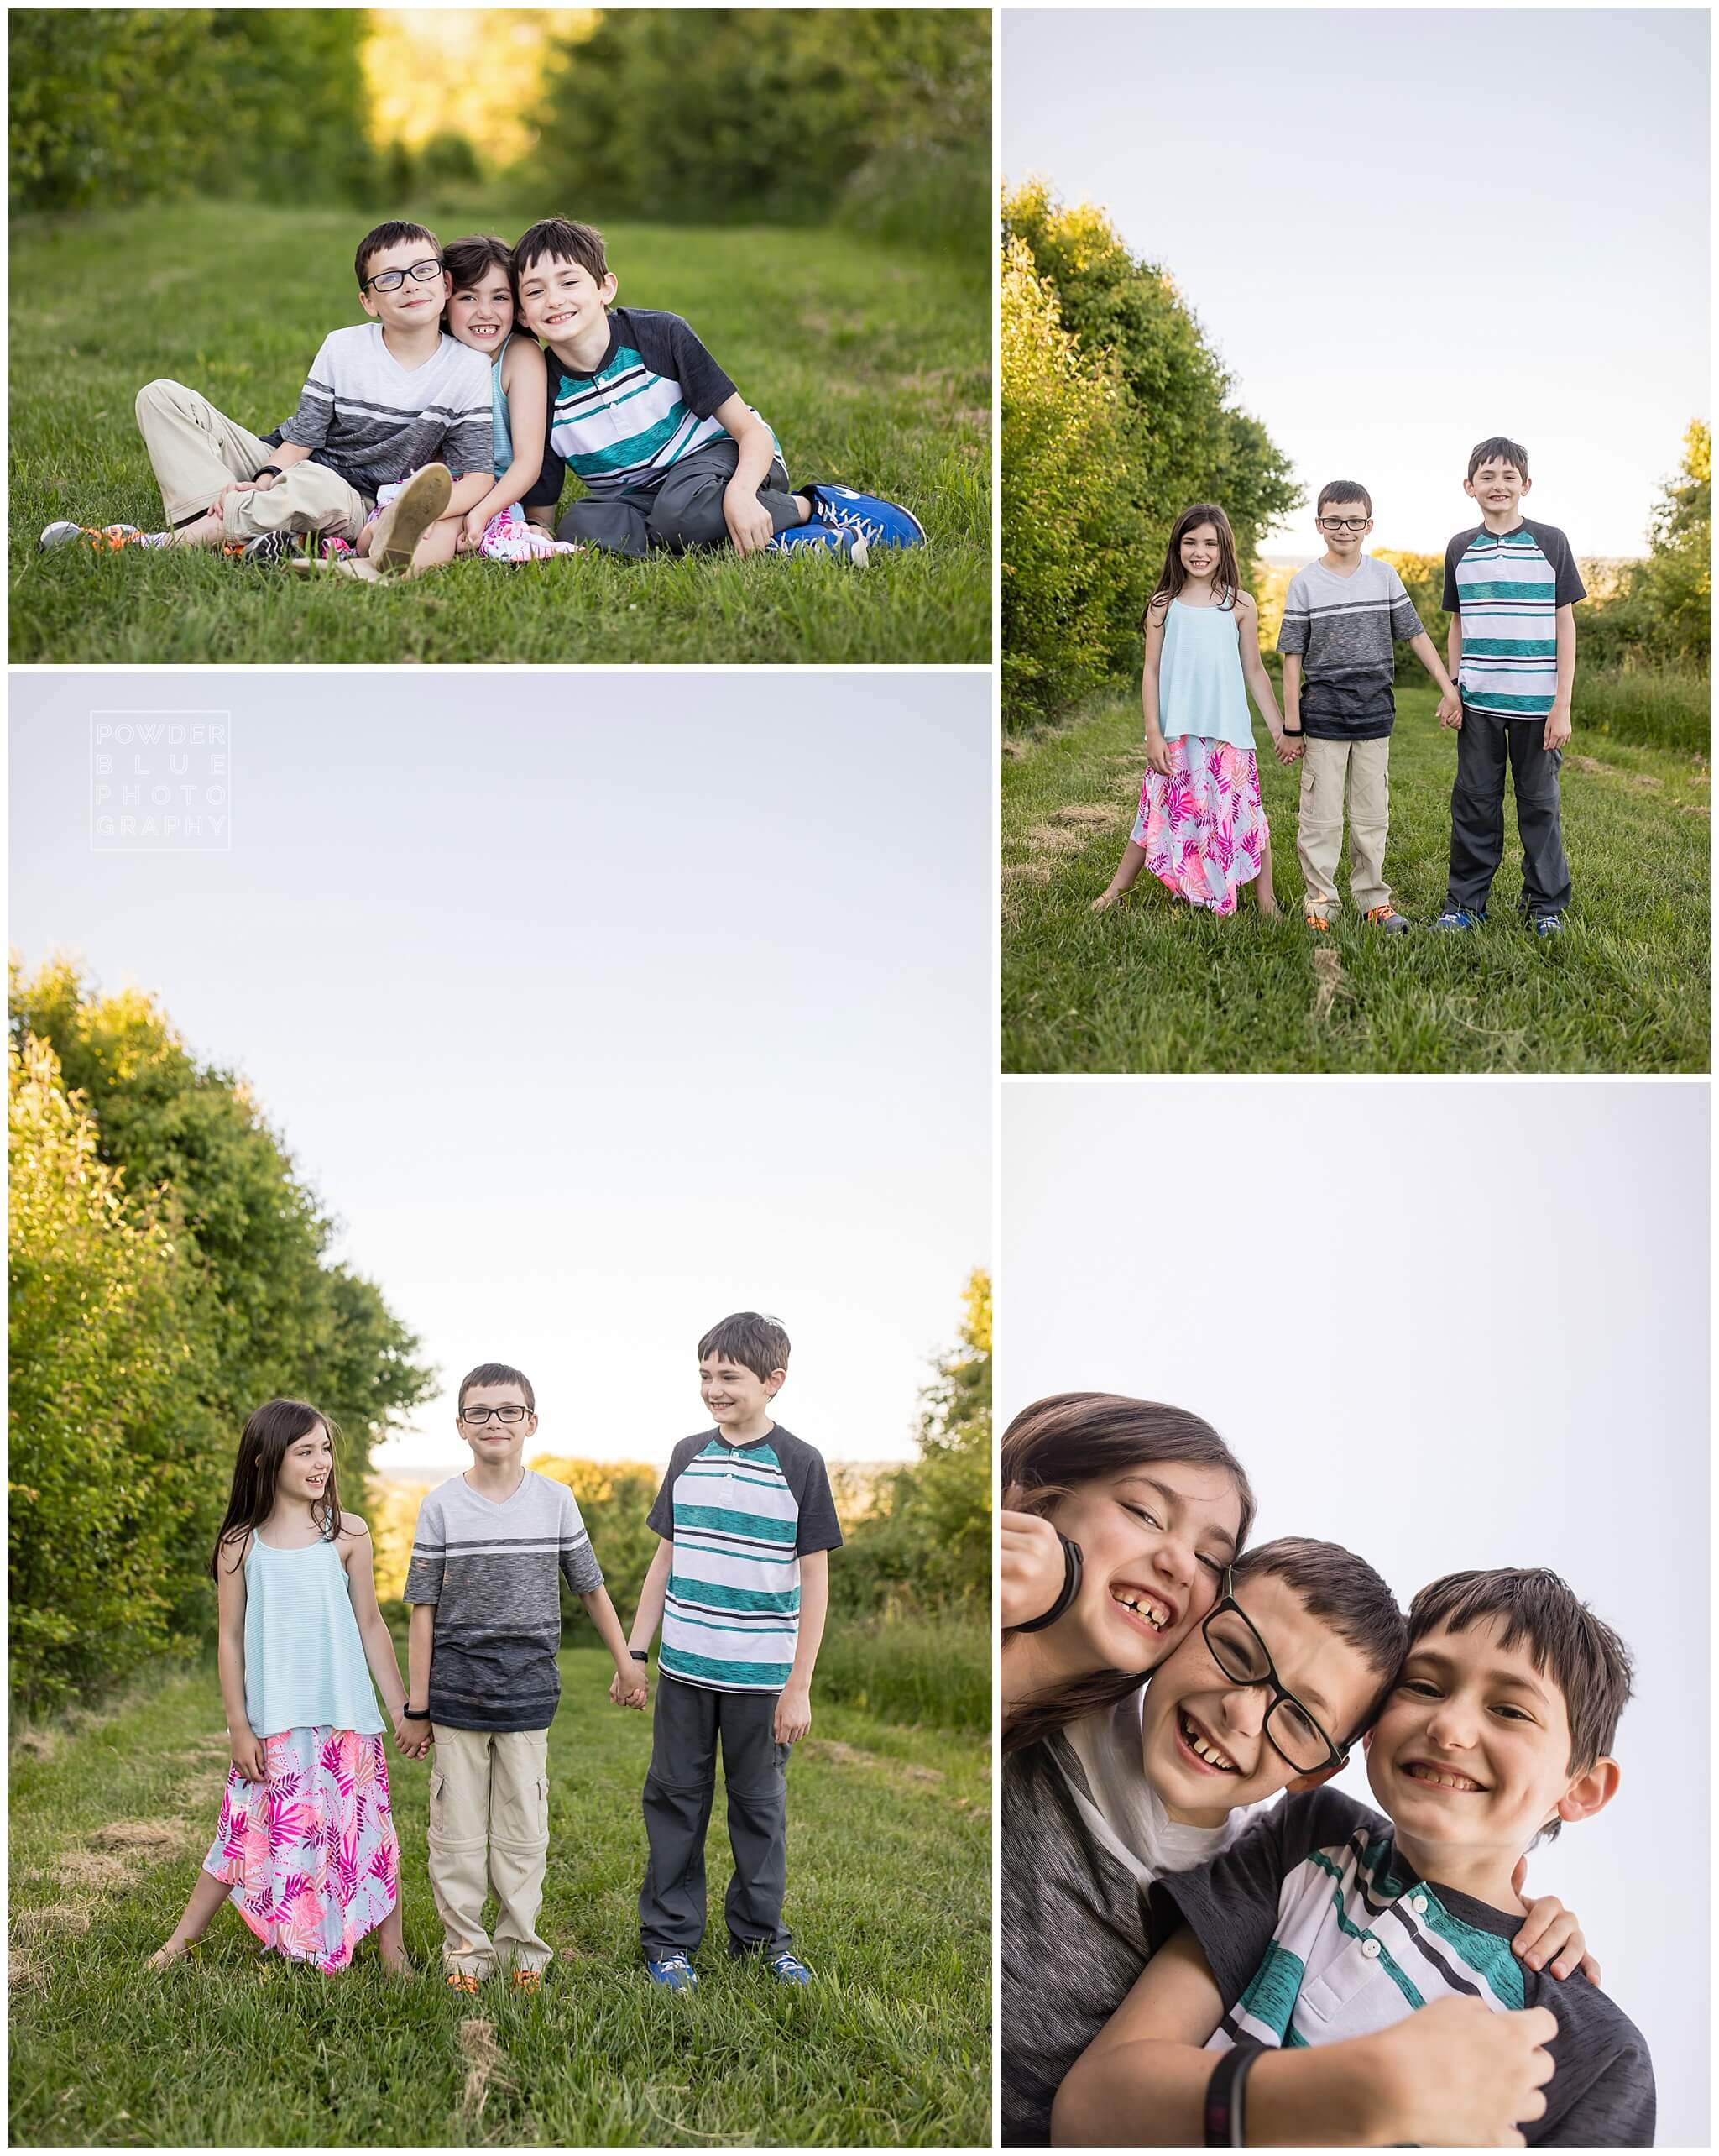 pittsburgh family portrait 70-200 canon lens at f4. child tween portrait at nature park .